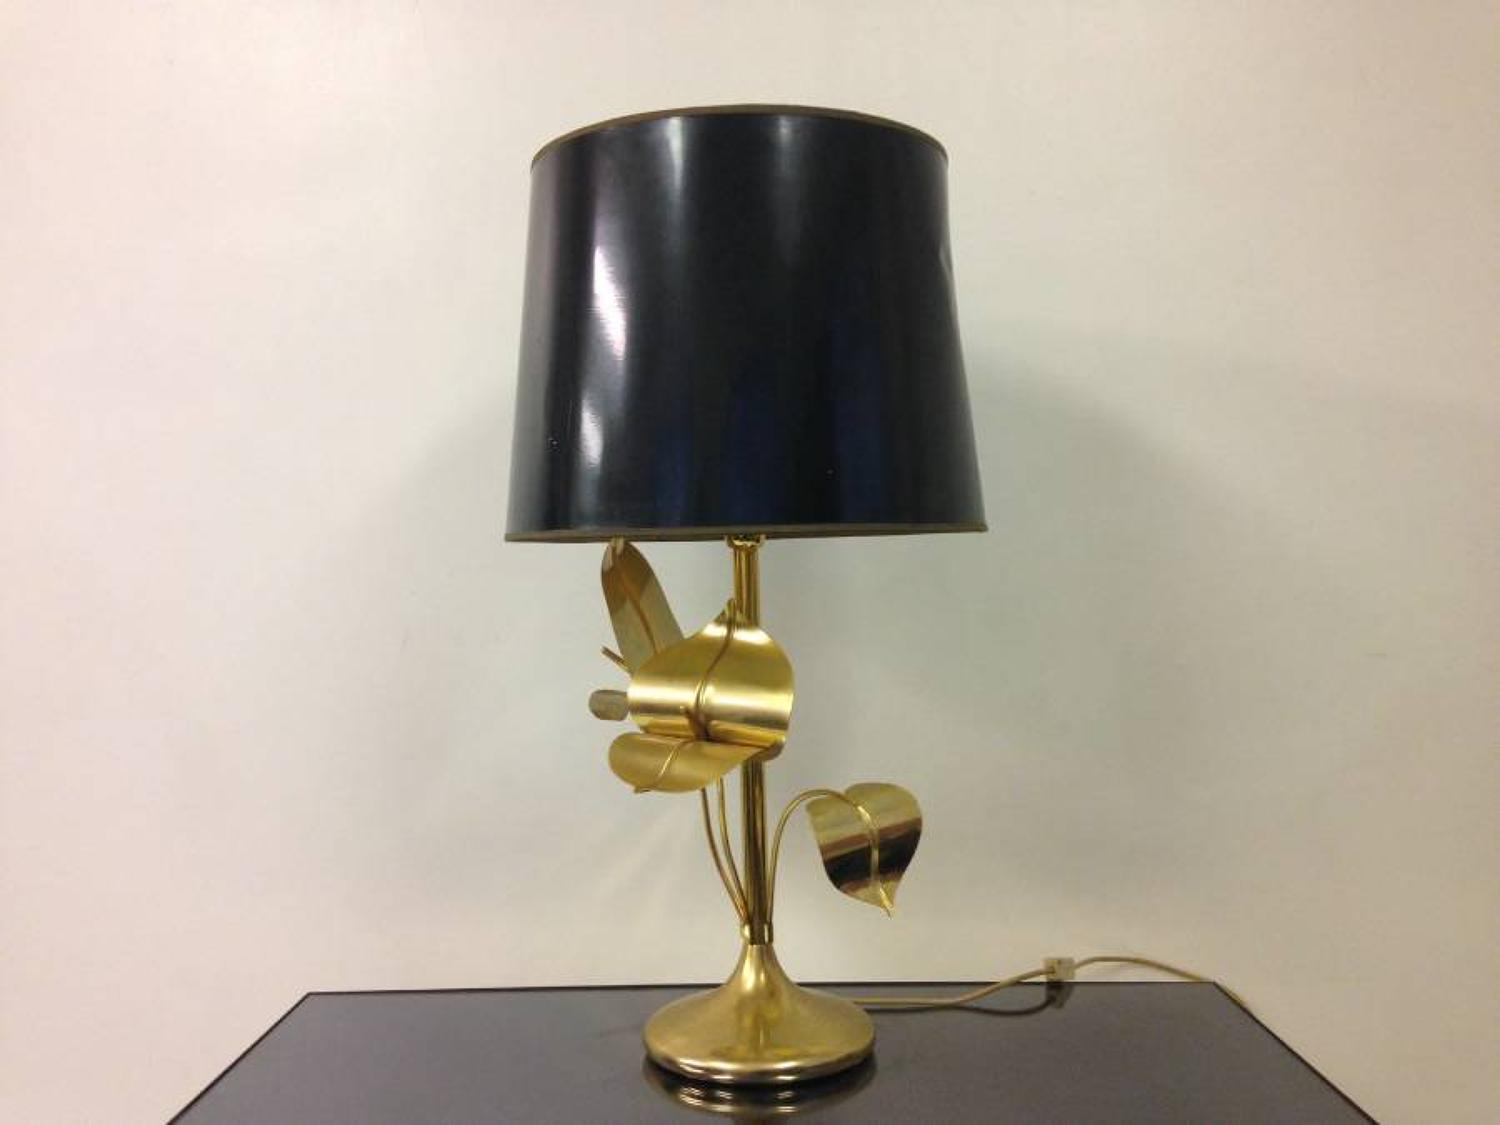 Gilt metal leaf lamp with black shade